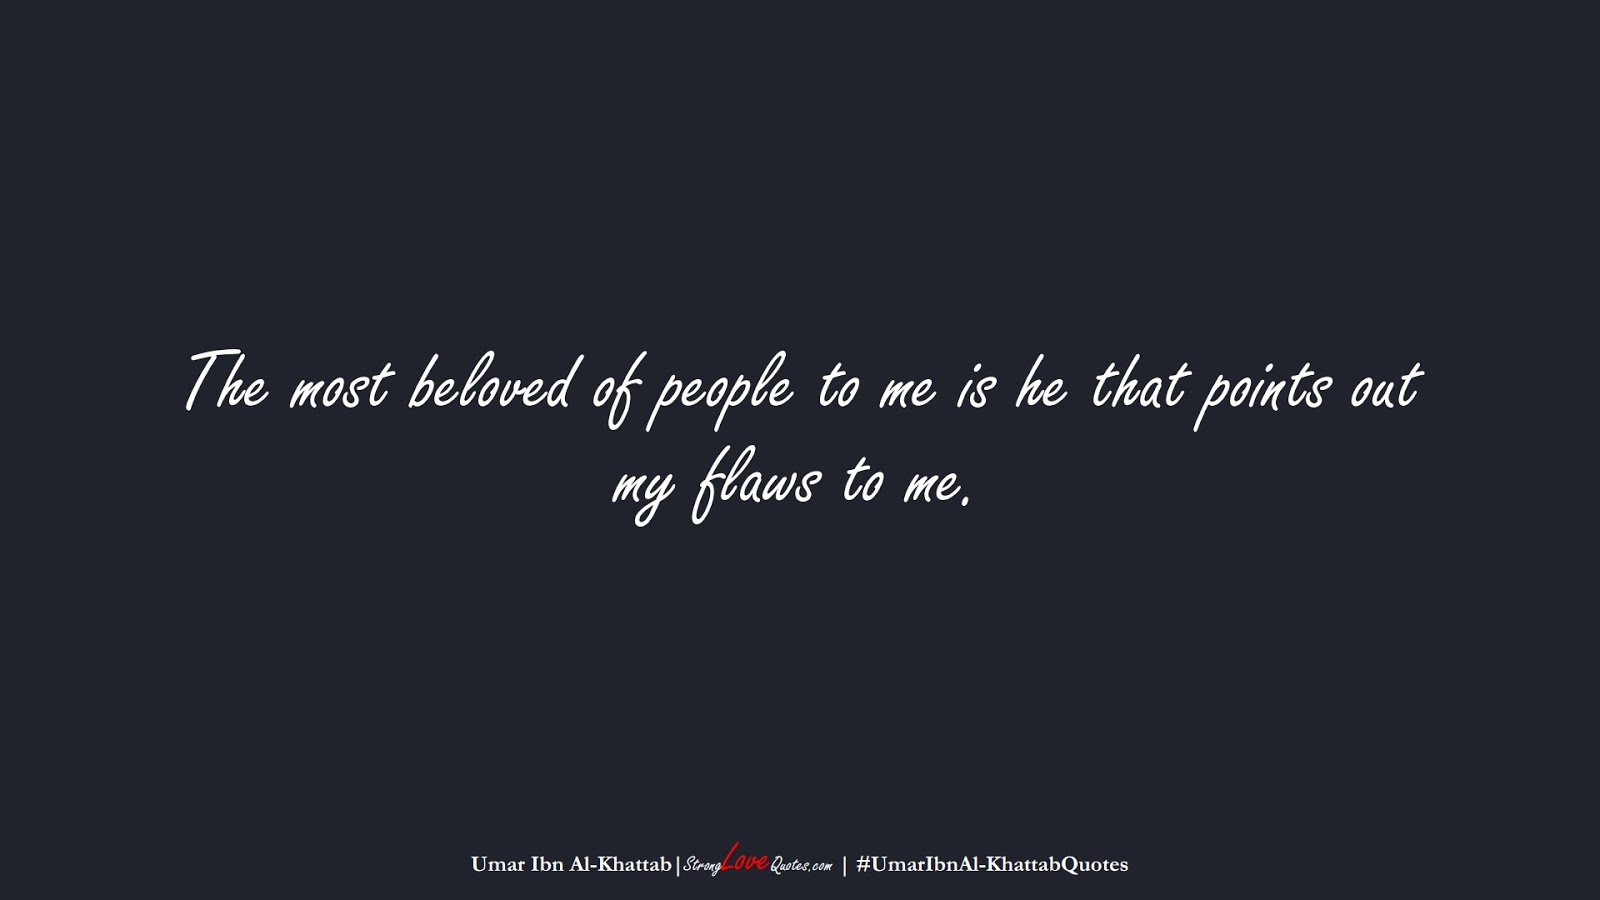 The most beloved of people to me is he that points out my flaws to me. (Umar Ibn Al-Khattab);  #UmarIbnAl-KhattabQuotes